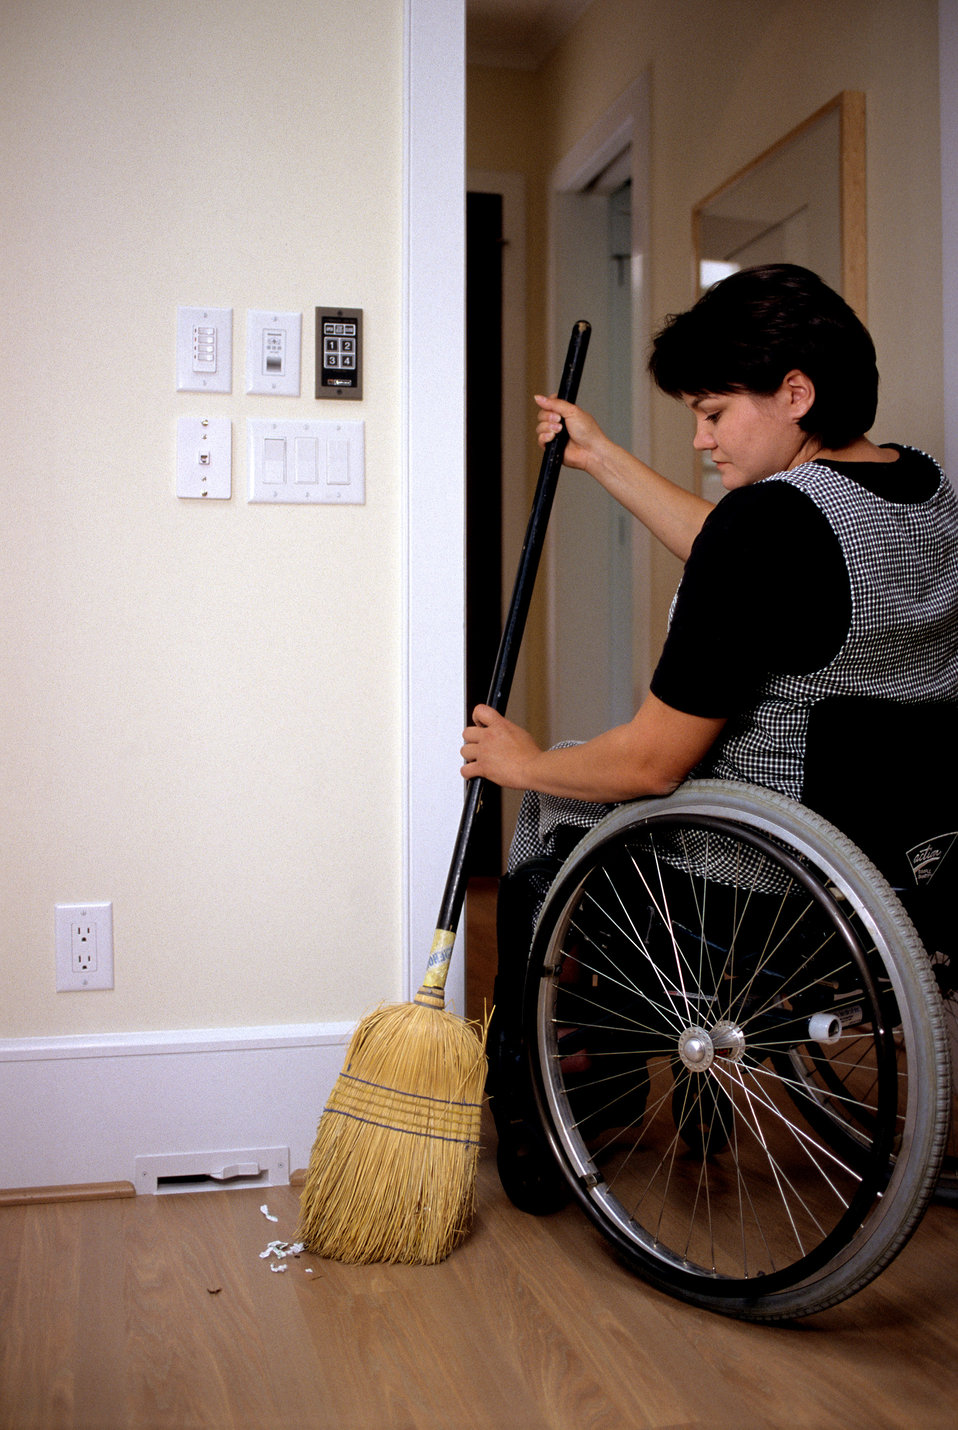 With broom in hand, this 2000 photograph showed a wheelchair-seated woman as she was sweeping some debris towards a floor level intake vent